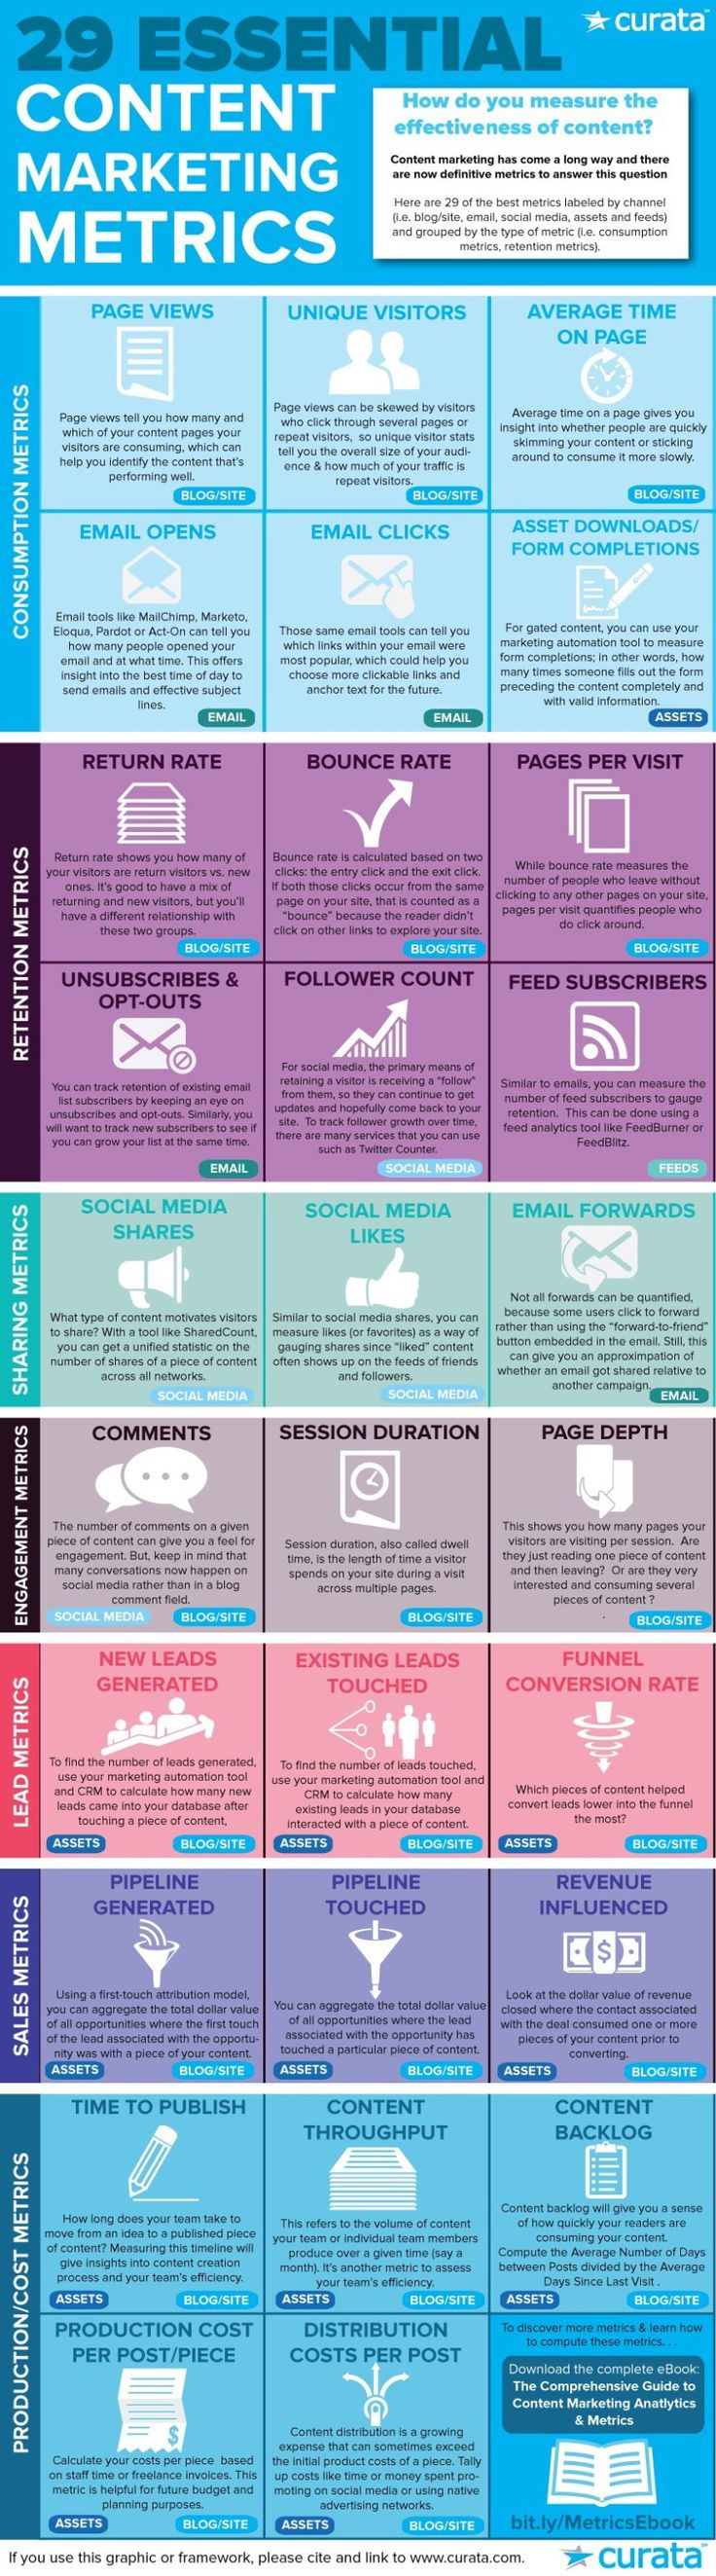 29 essential content marketing metrics #INFOGRAPHIC #MARKETING